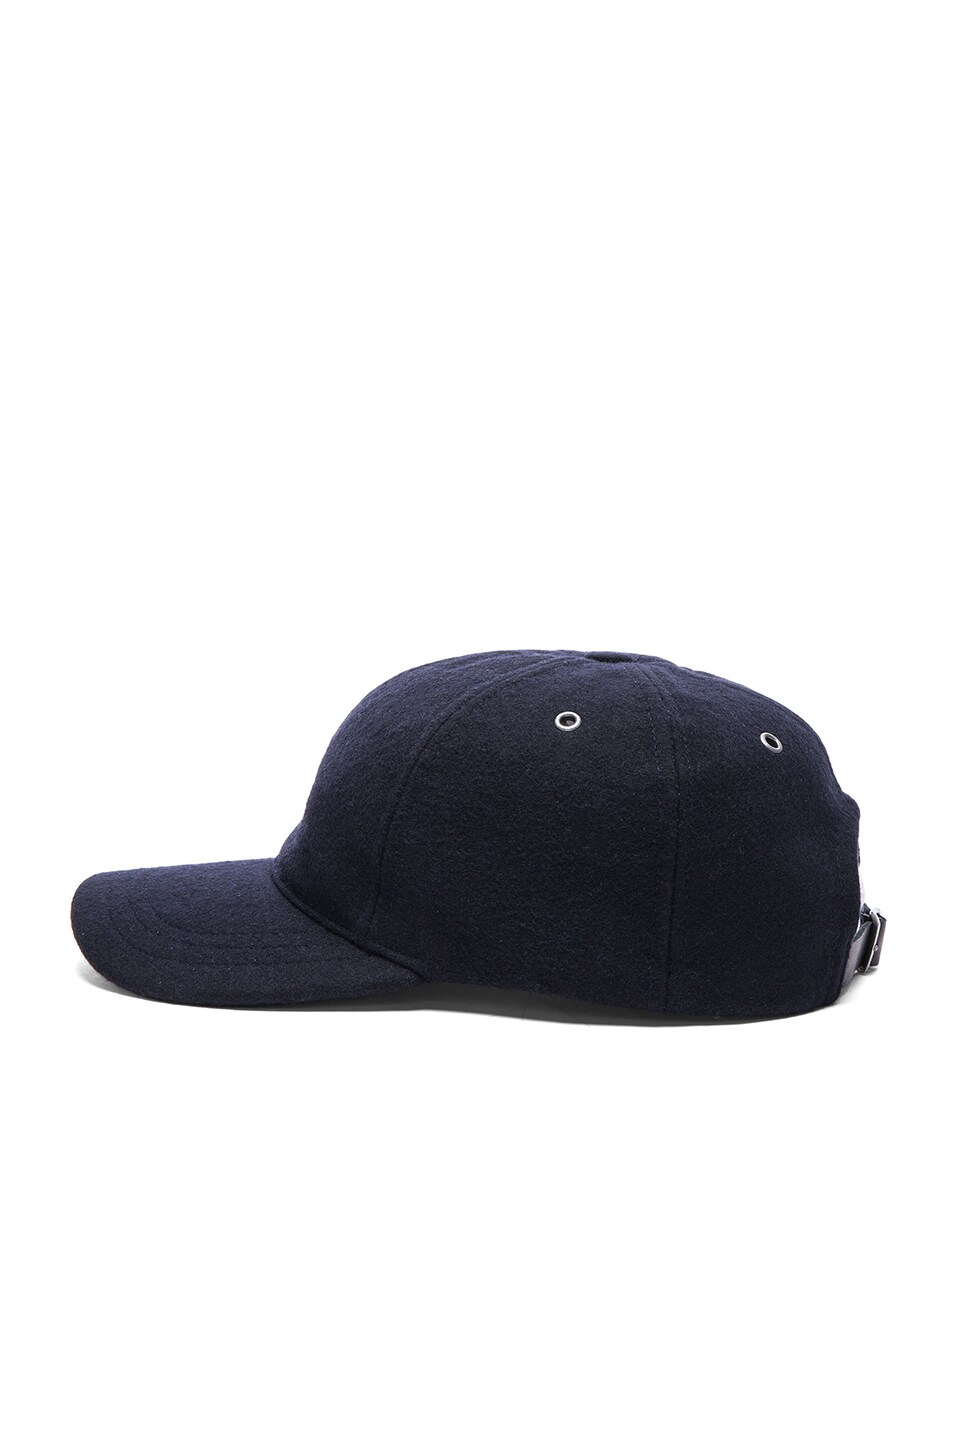 Image 3 of A.P.C. Classic Cap in Dark Navy 0e3b73933e7